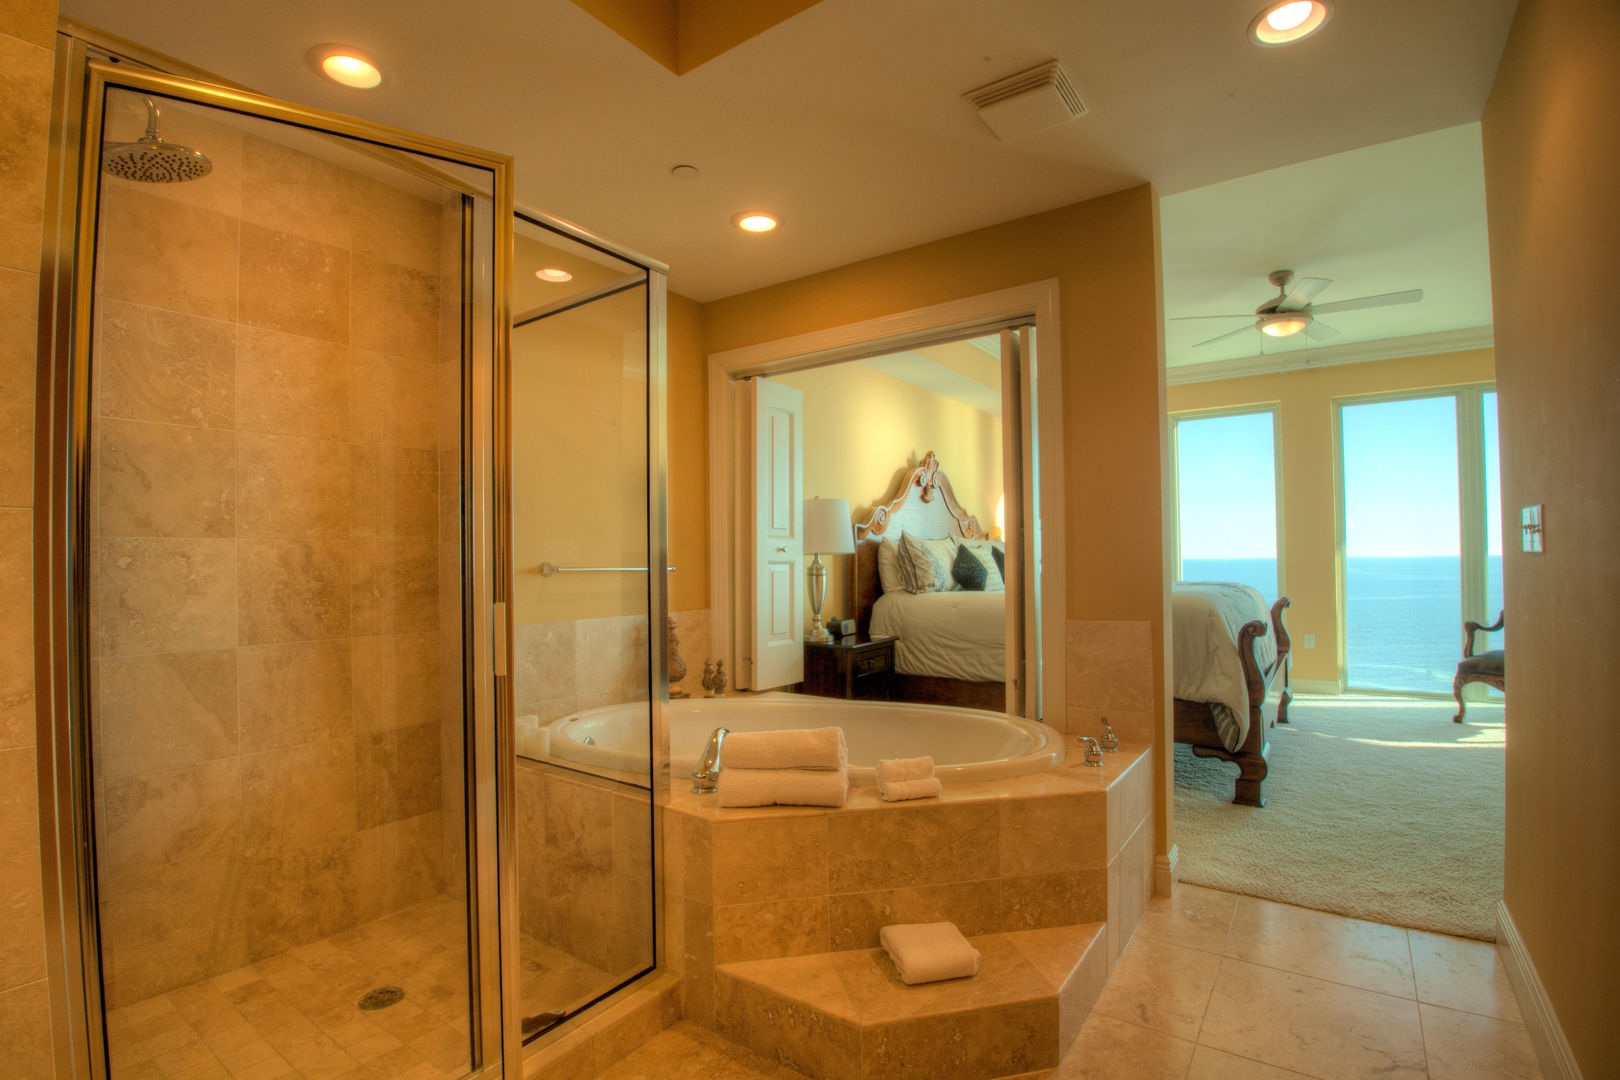 Shower with Glass Door, Hot Tub, Large Bed, and Windows.